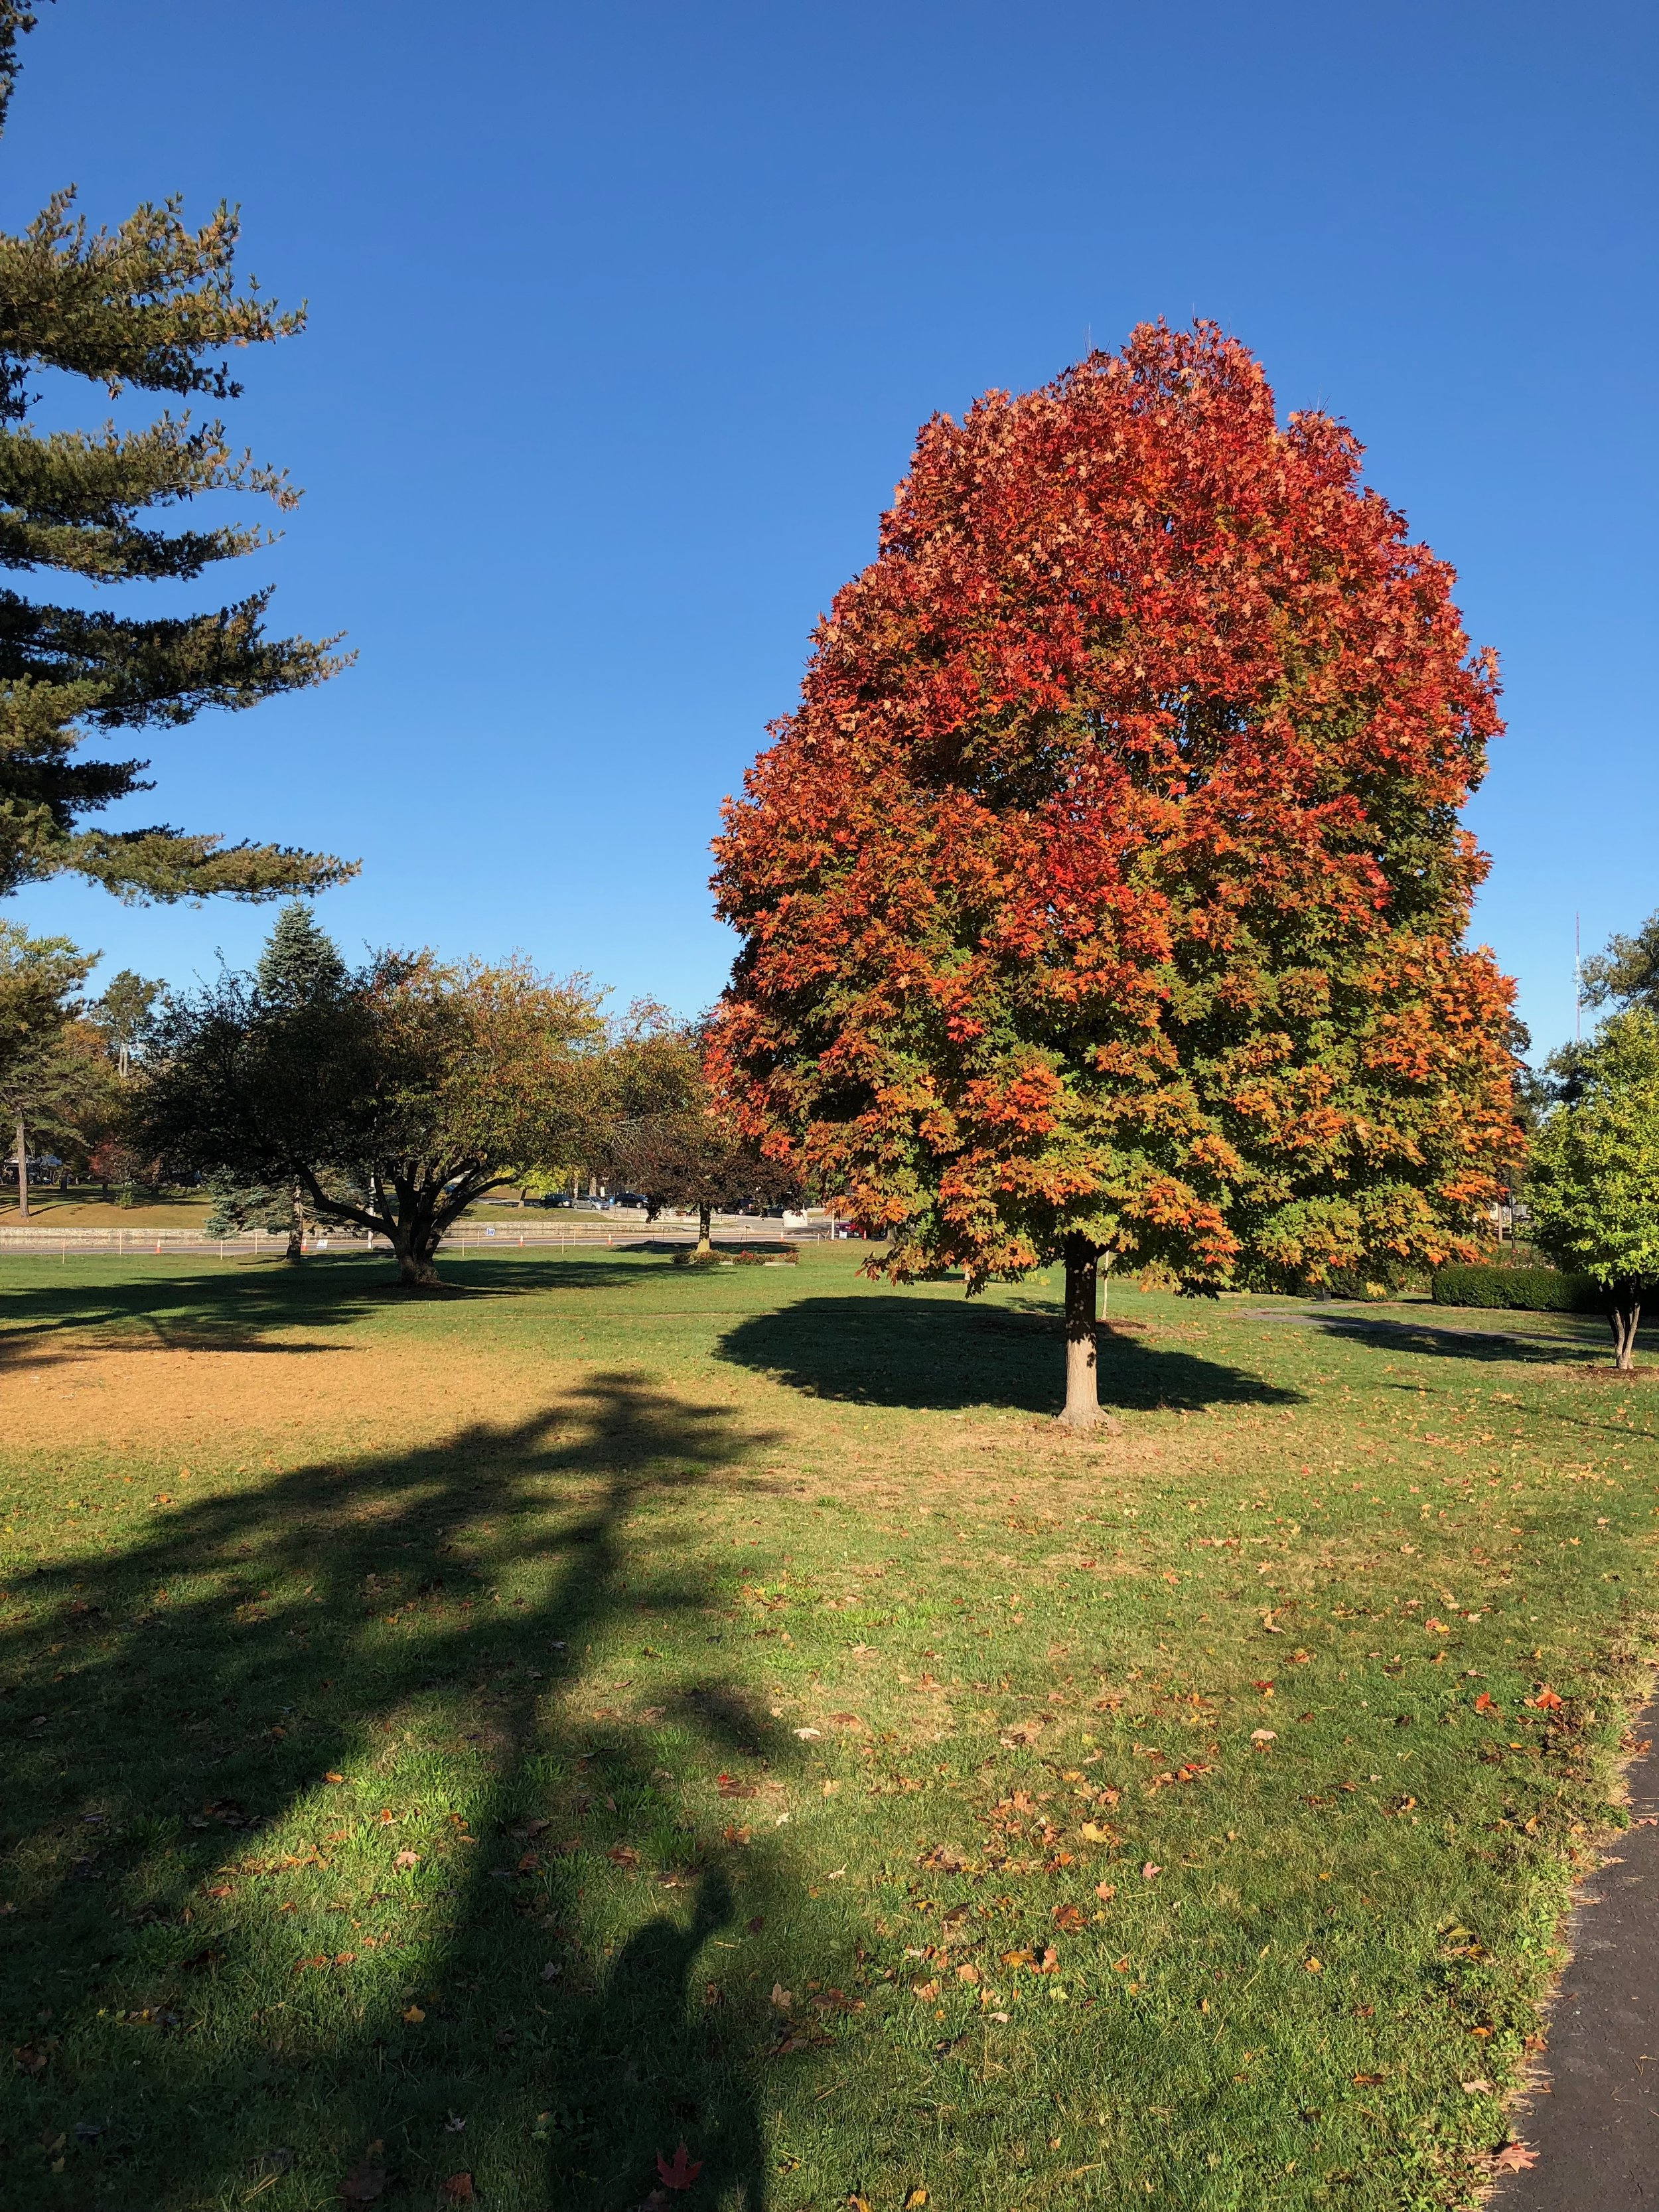 Signs of autumn at Deering Oaks Park